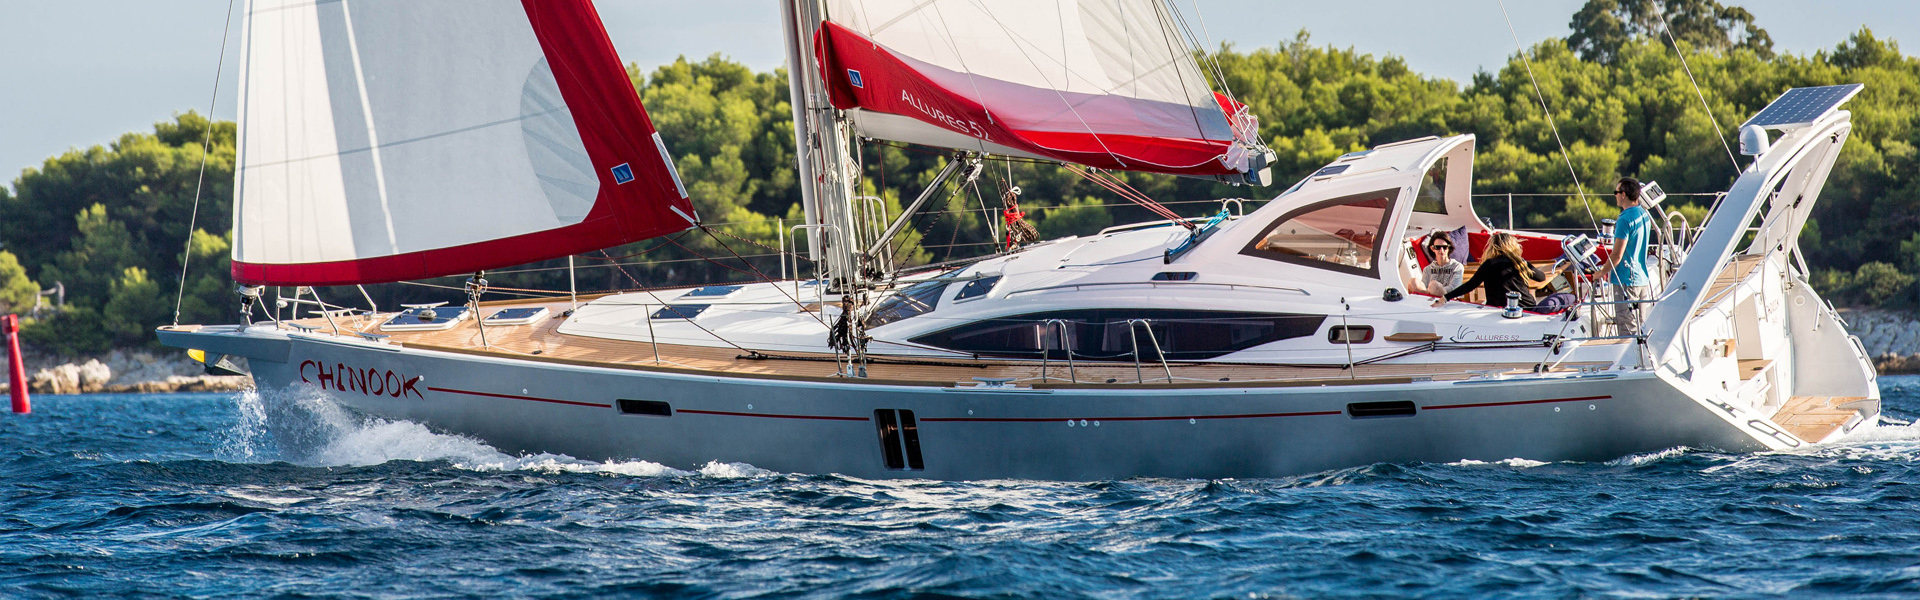 Williams And Smithells International Yacht Brokerage New Allures Agents